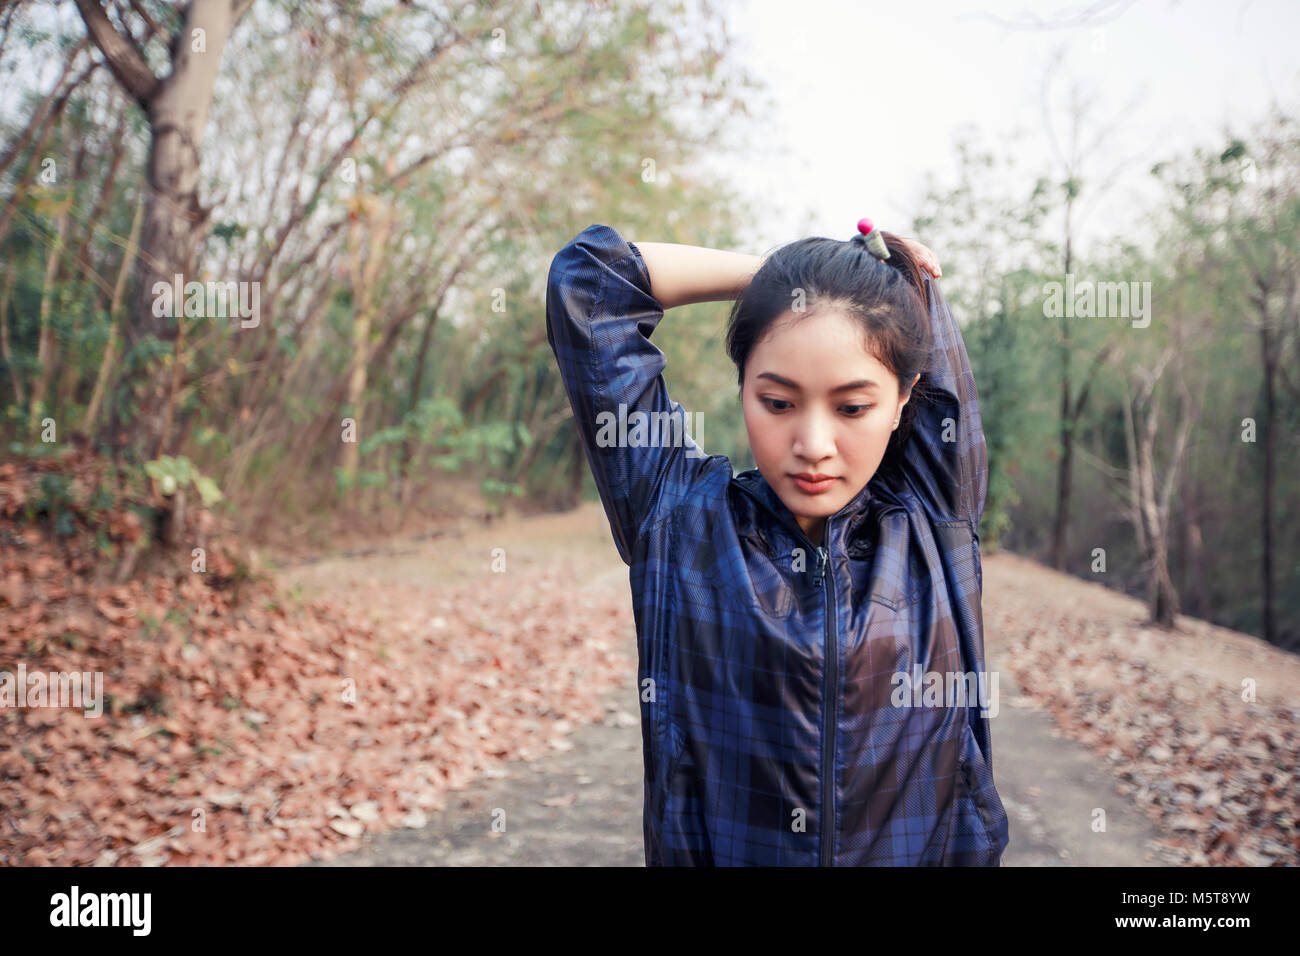 Athletic woman asia warming up and Young female athlete exercising and stretching in a park before Runner outdoors, - Stock Image